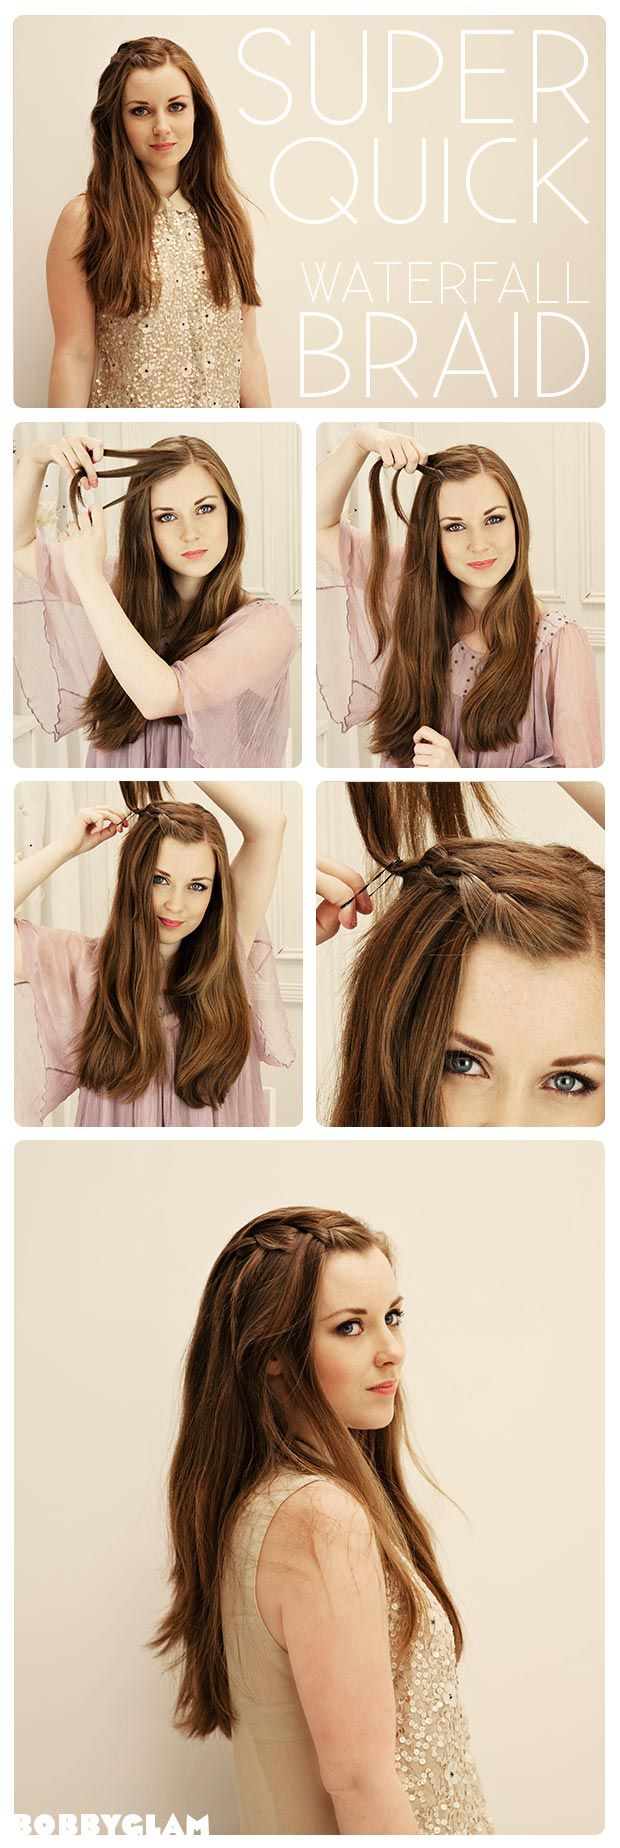 Waterfall Braid Hair Tutorial ♥